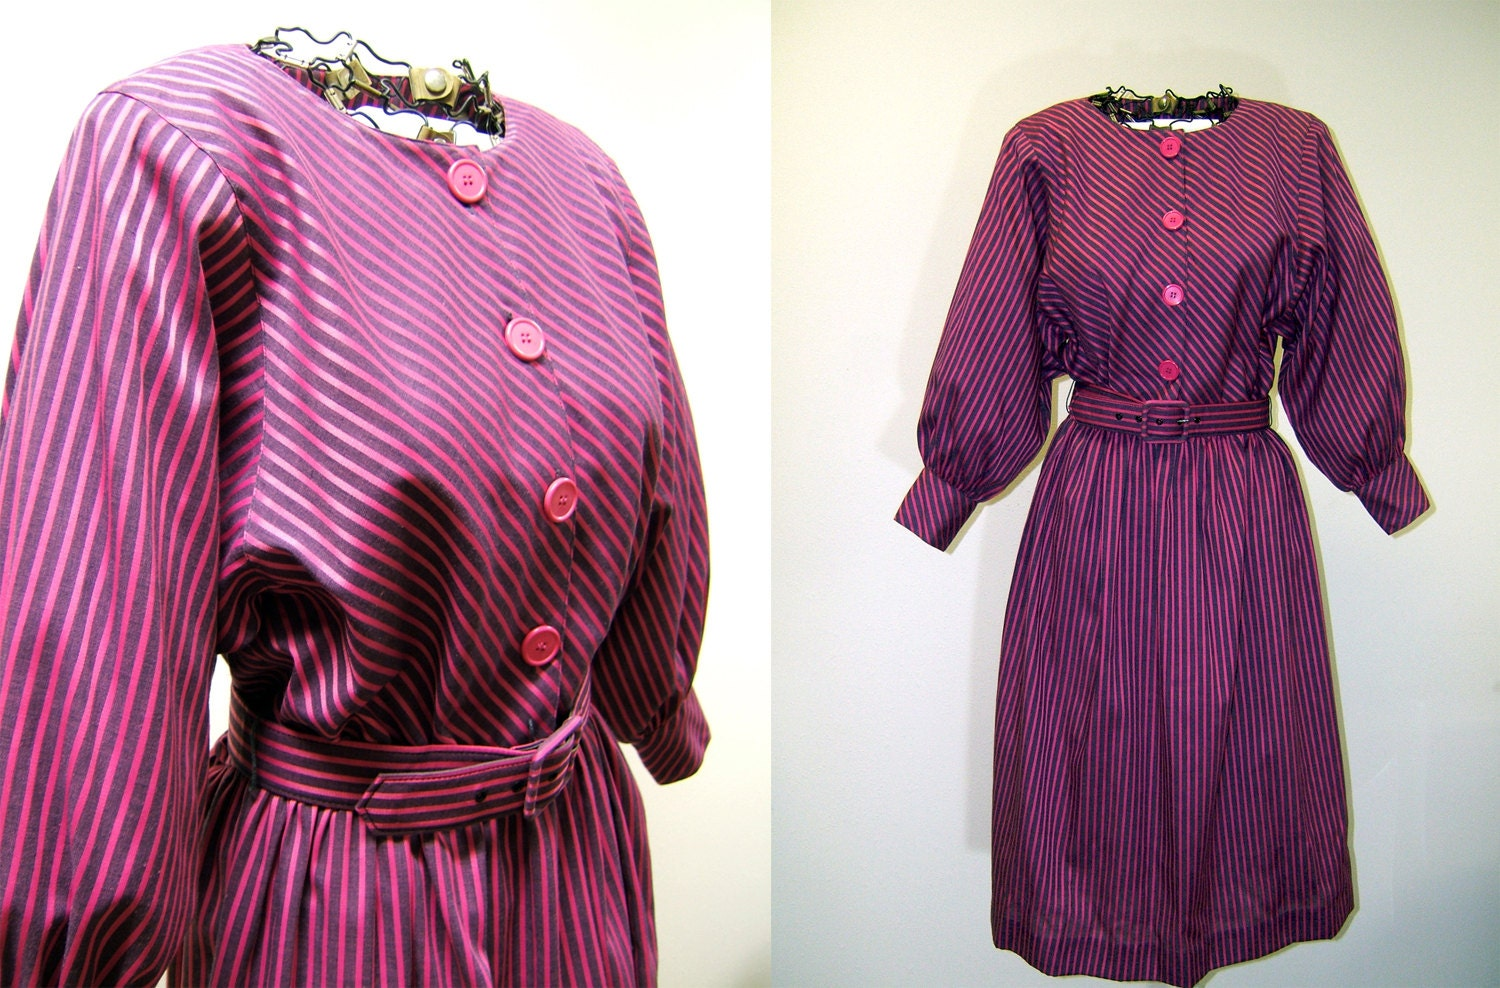 e5317f88167c Vintage Pink and Purple Striped Dress with Belt Large R K